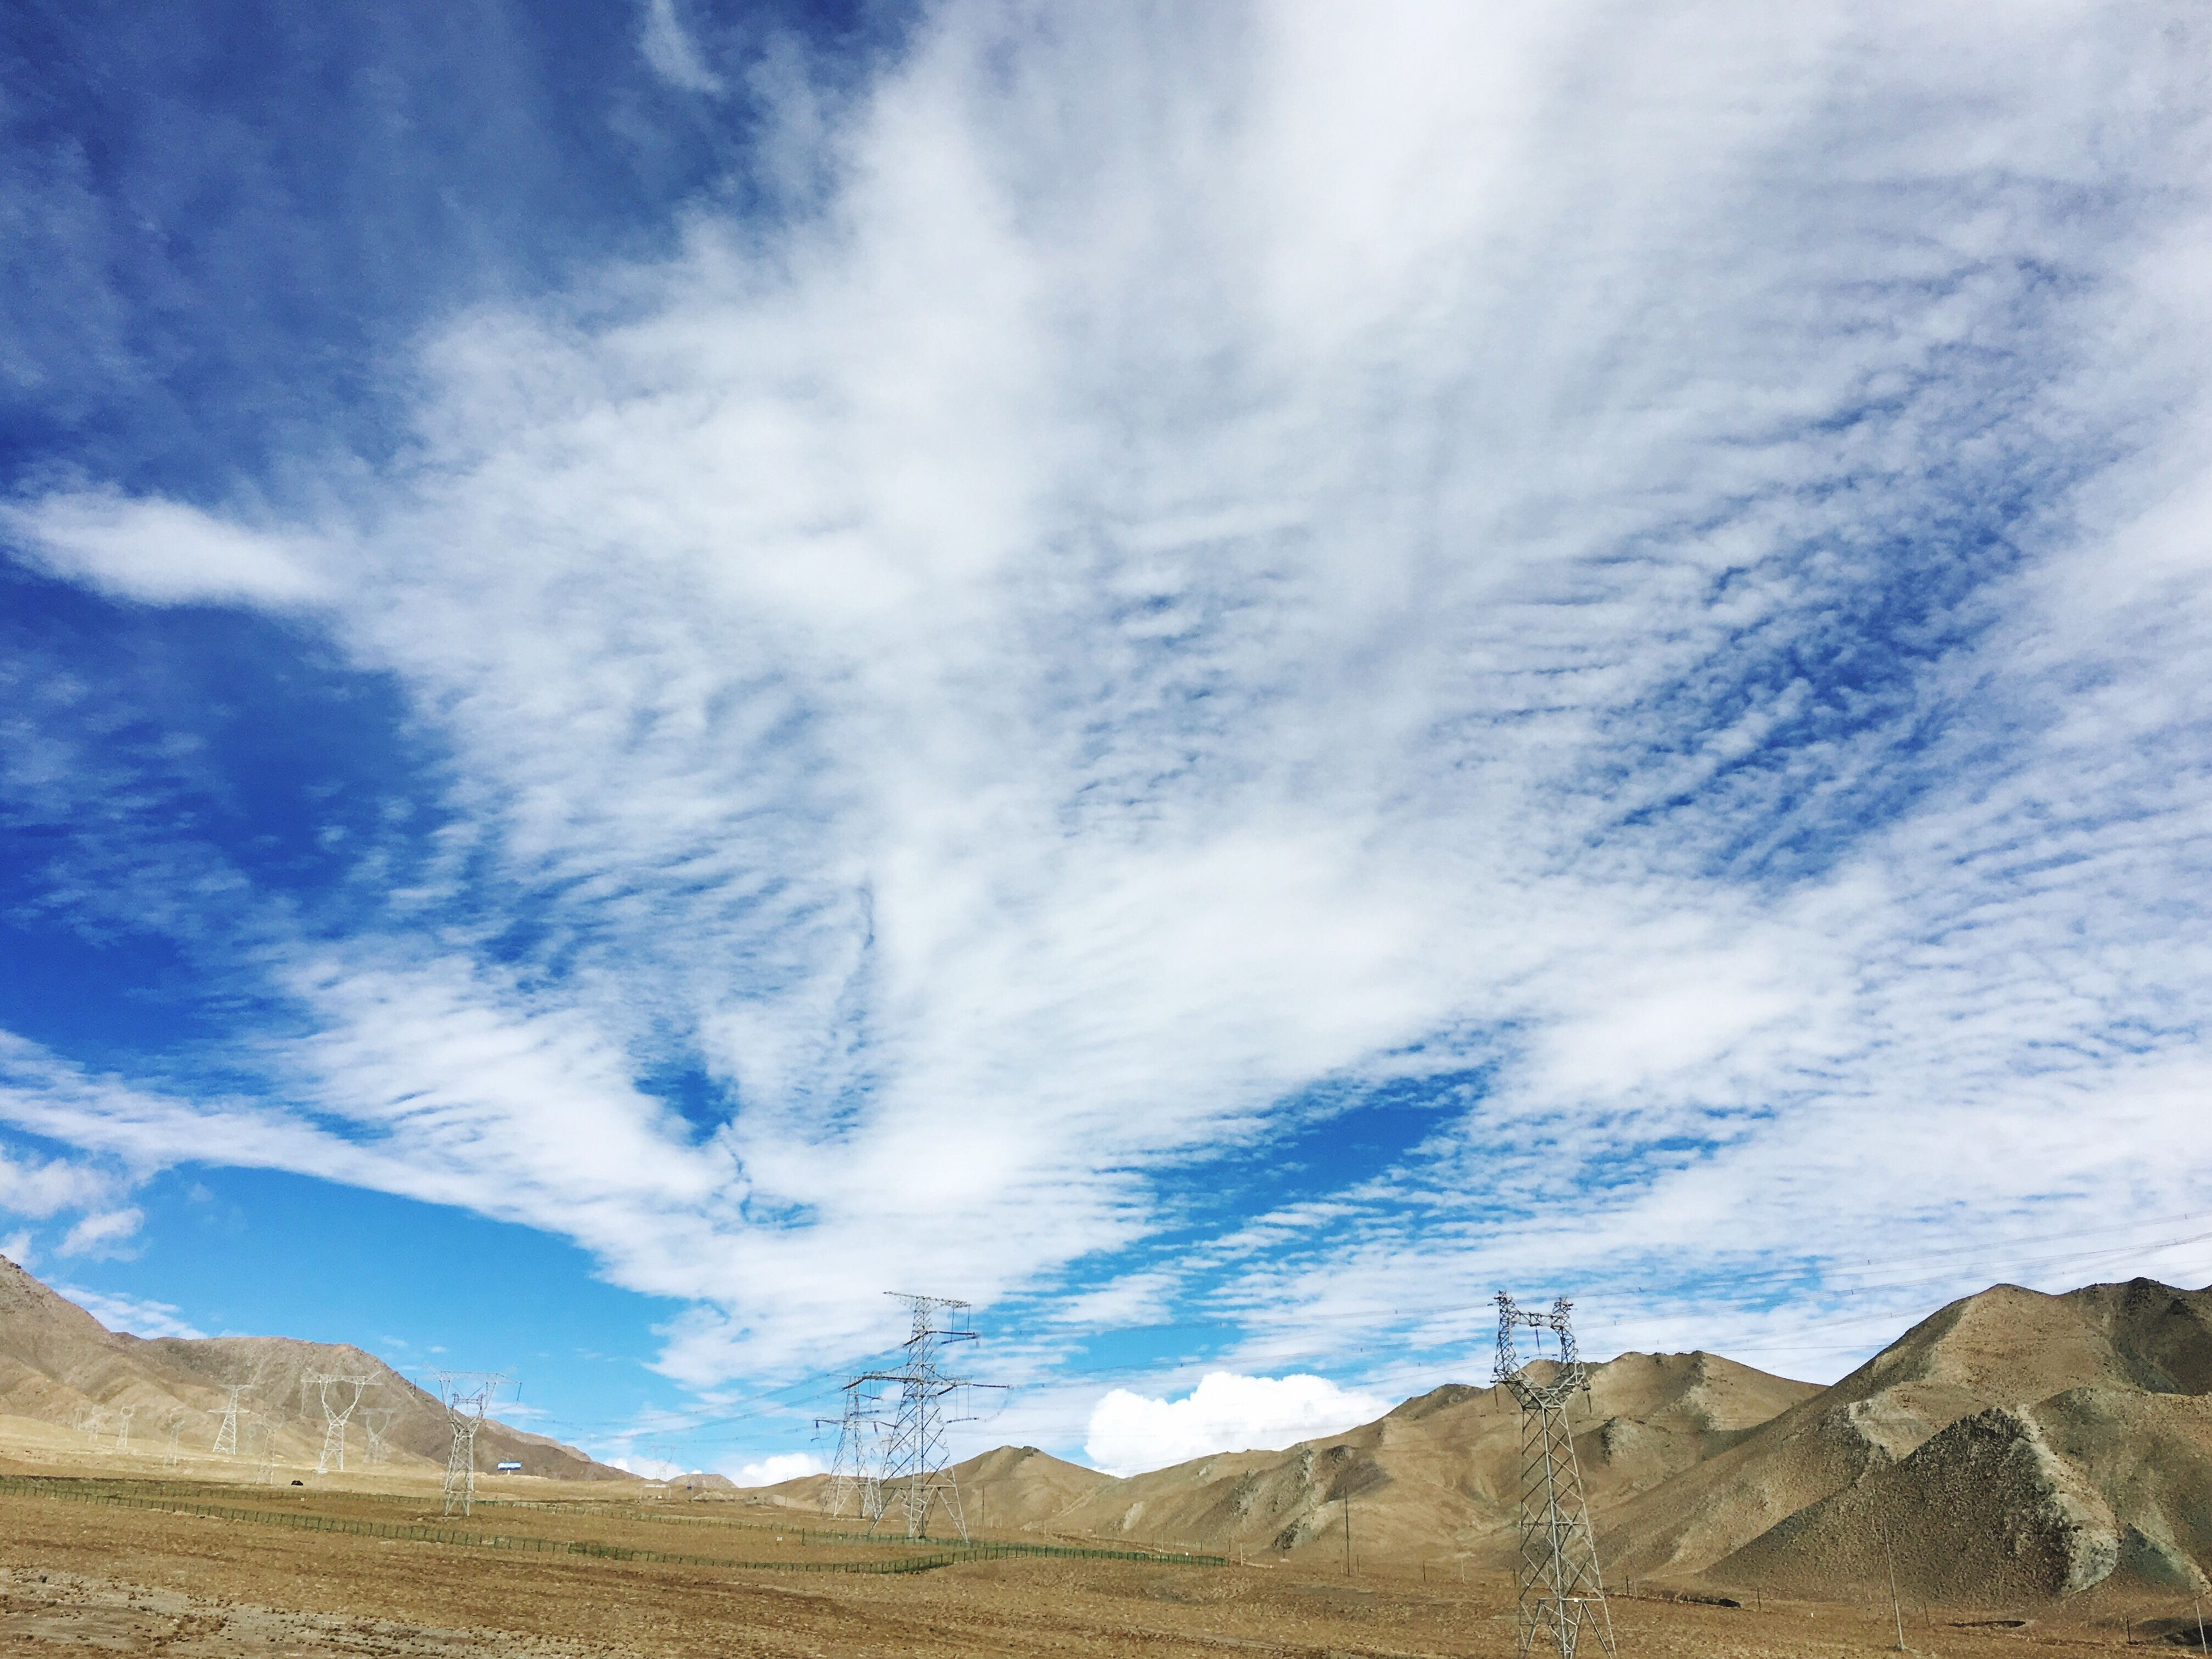 sky, low angle view, blue, mountain, scenics, day, beauty in nature, nature, outdoors, cloud - sky, cloud, tranquility, tranquil scene, mountain range, no people